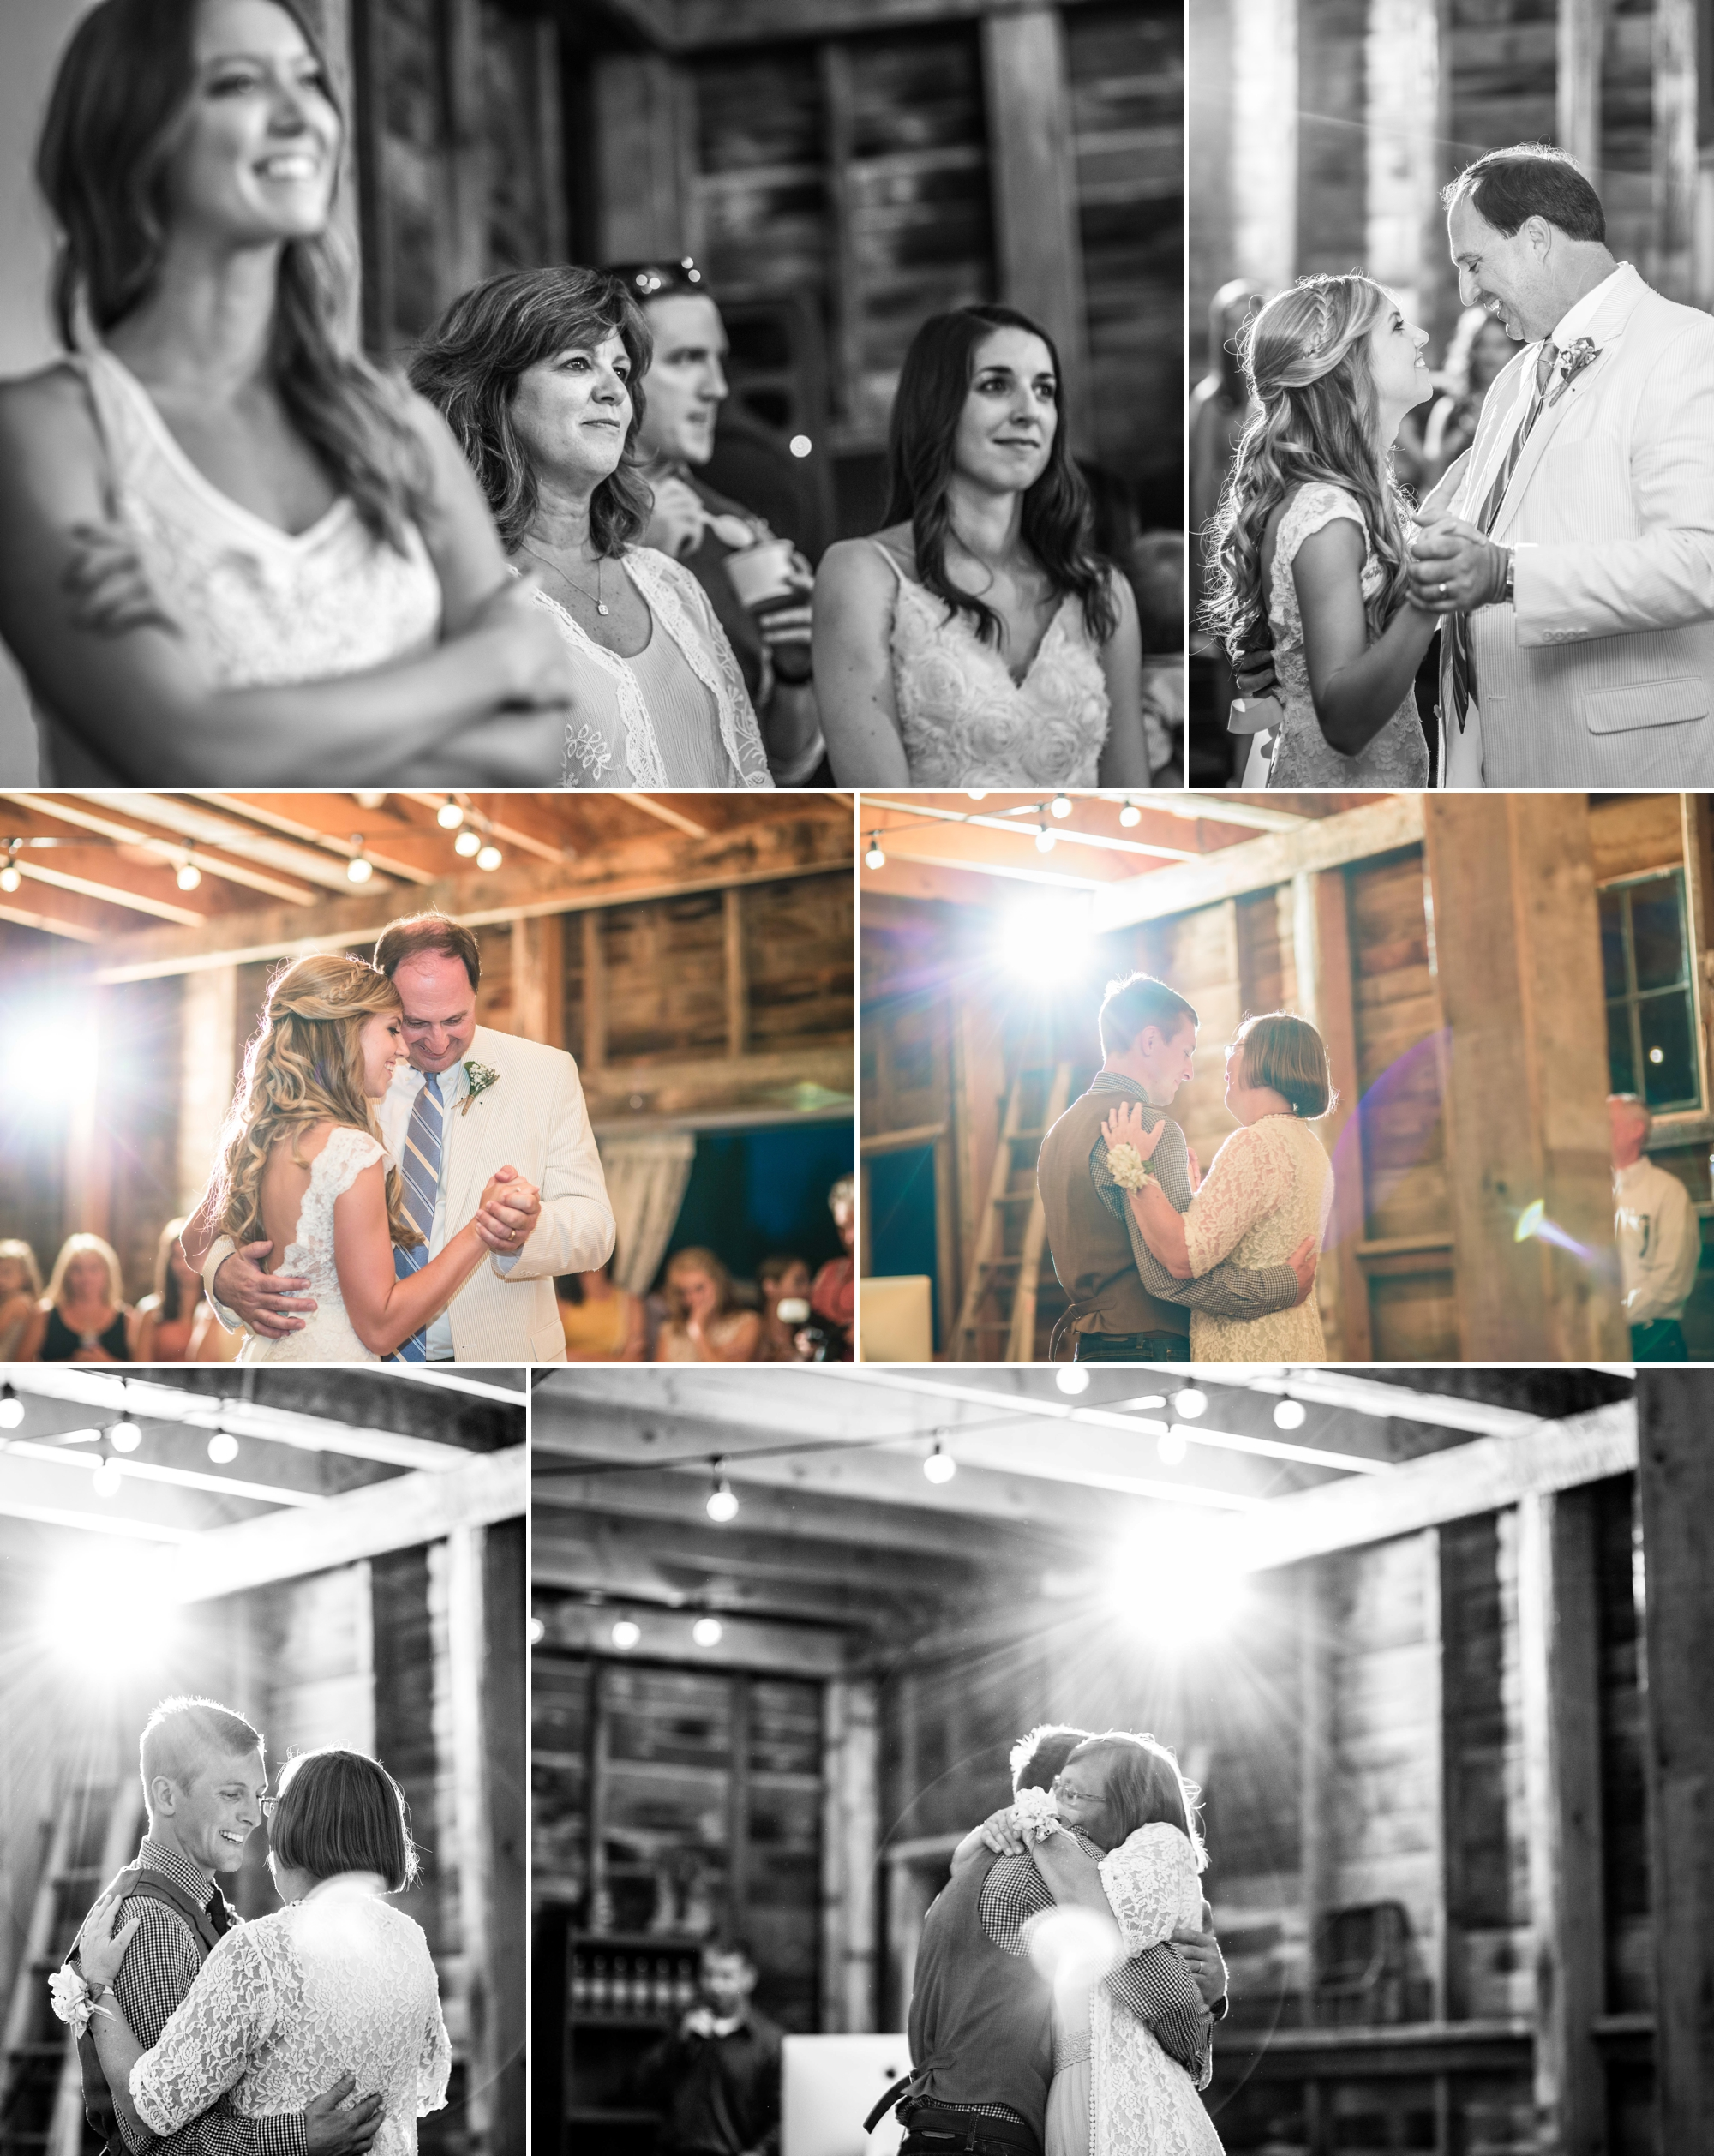 Father-daughter and mother-son dances are another favorite moment of ours during a wedding!